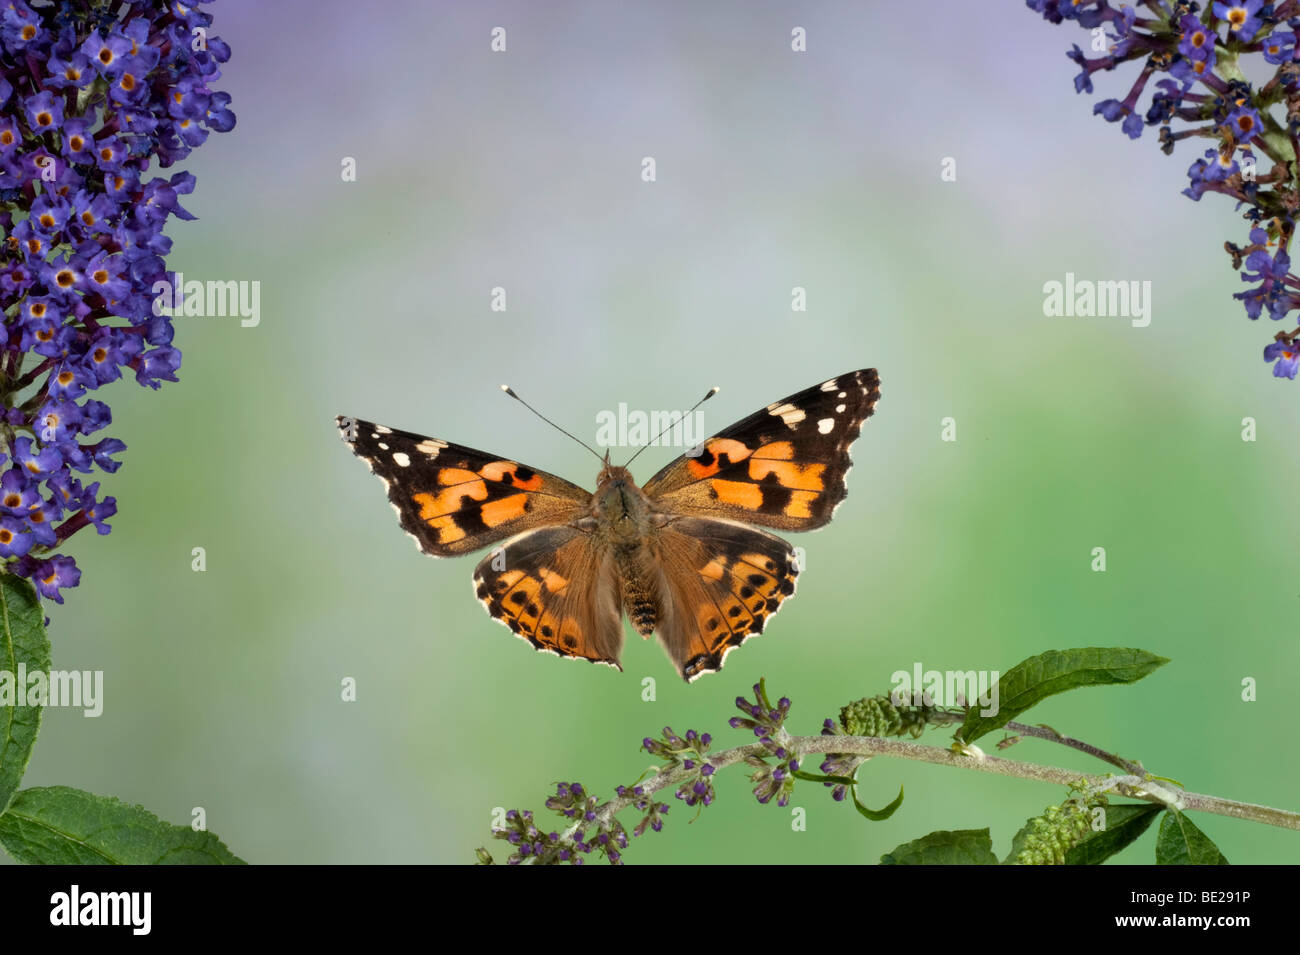 Painted Lady Butterfly Cynthia cardui adult in flight high speed photographic technique flying over buddelia migrant - Stock Image